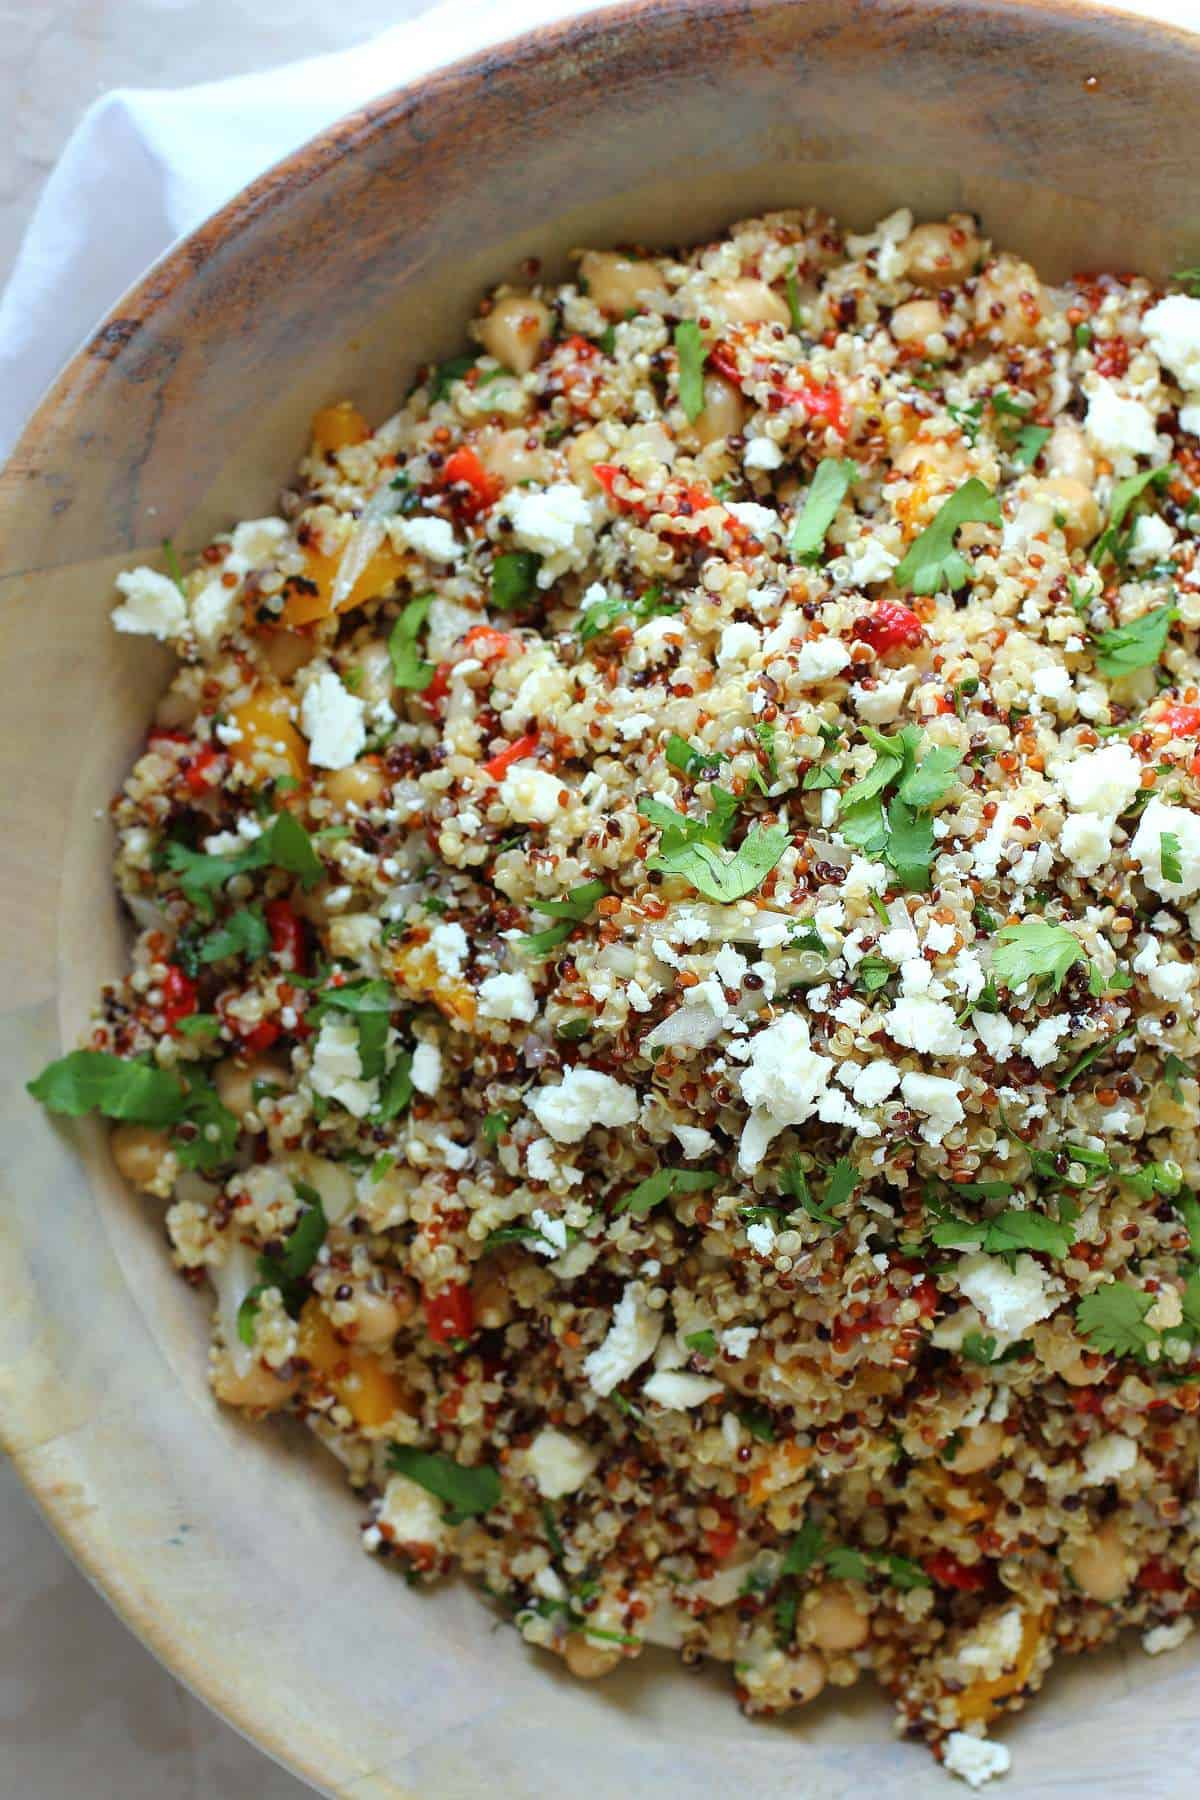 ... vegetable quinoa salad this roasted pepper feta yellow and red peppers